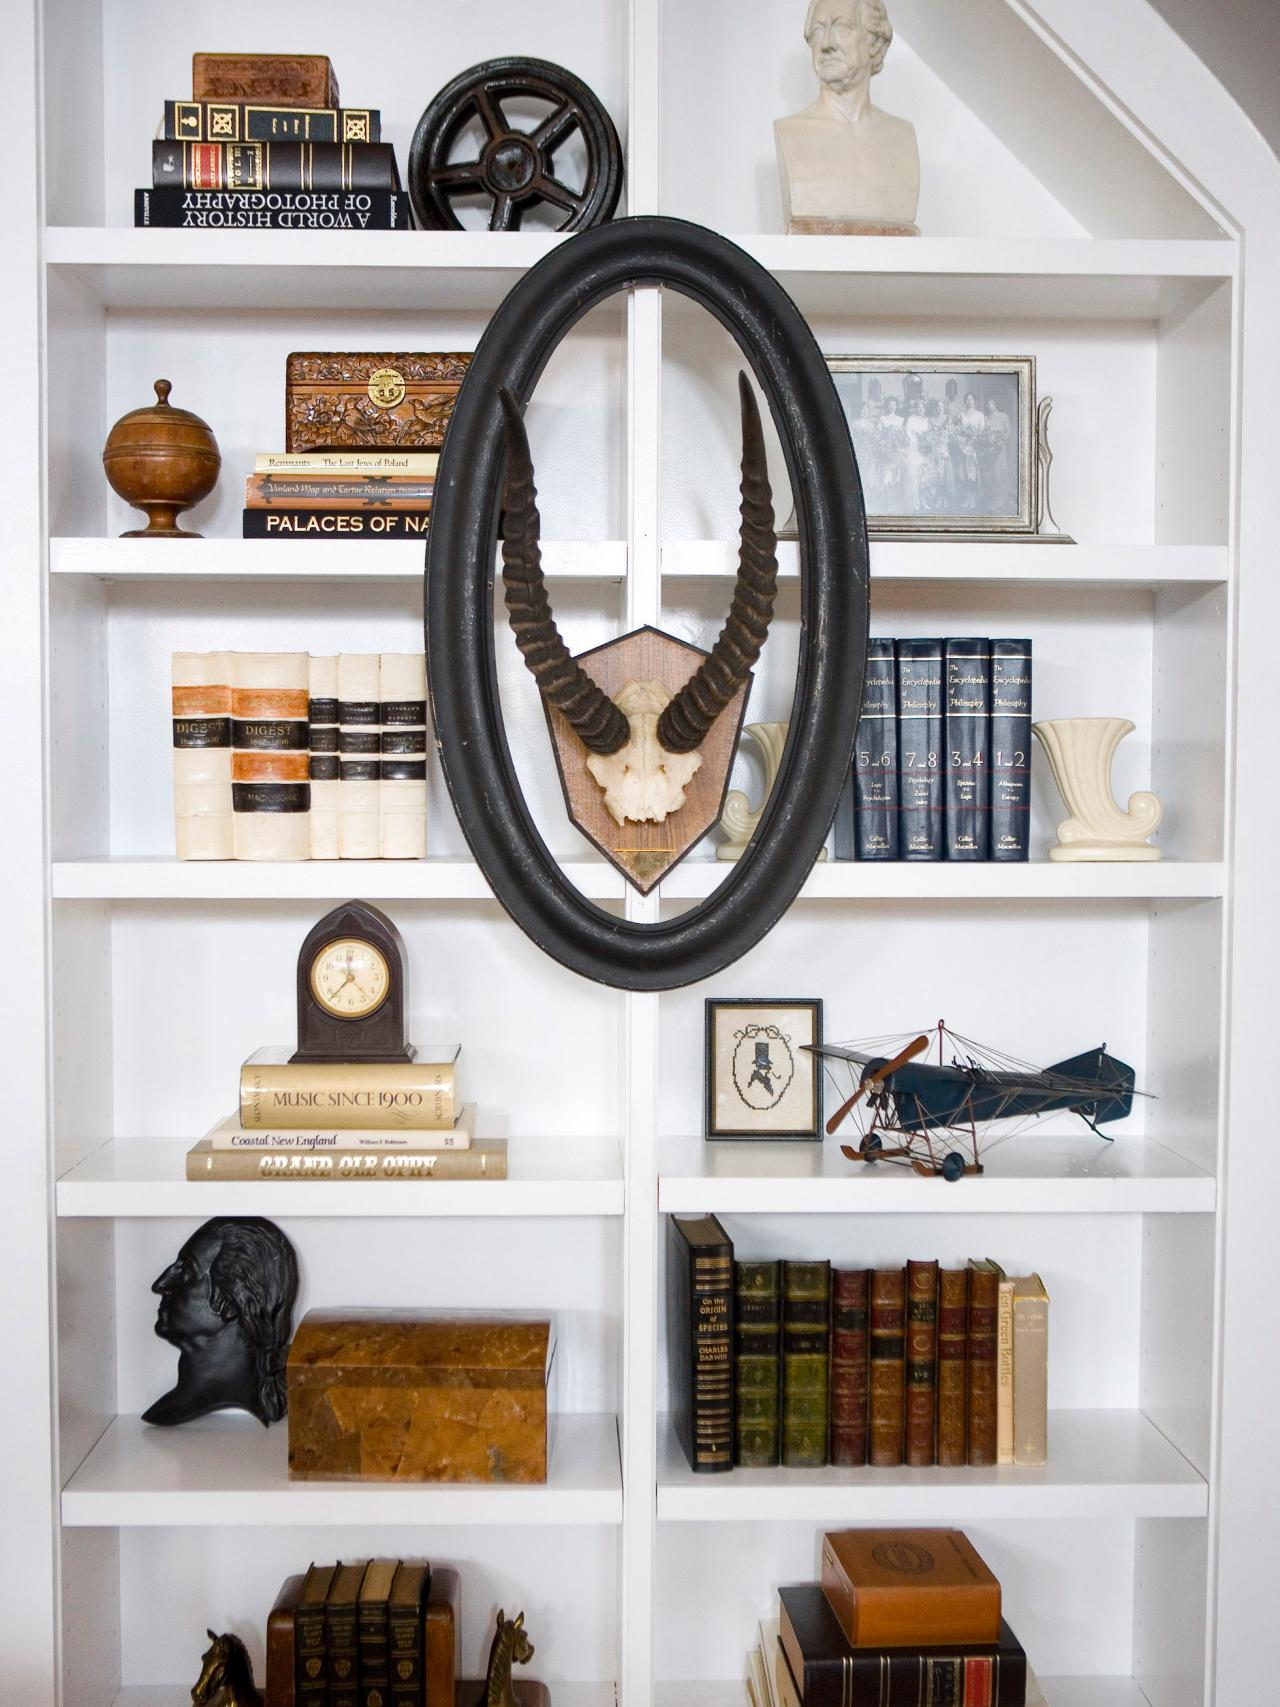 Phantasy Your Shelfies When You Bookcase Display Decor Shelfies Are New Selfies Think Design Lovers Decorating Home Decor Wall Shelving Home Decor Wall Shelving Ideas home decor Home Decor Shelving